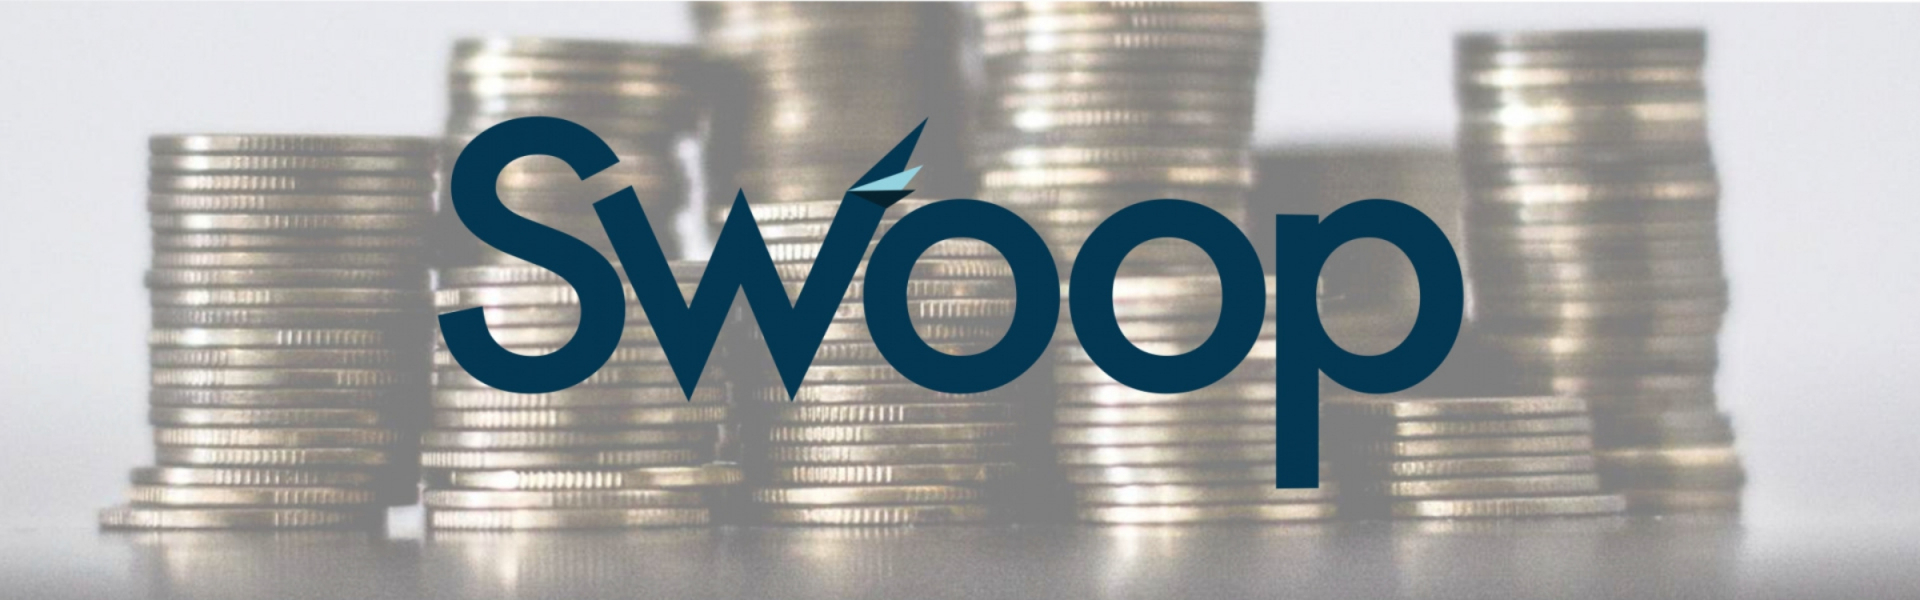 Swoop is the one-stop money shop for your business